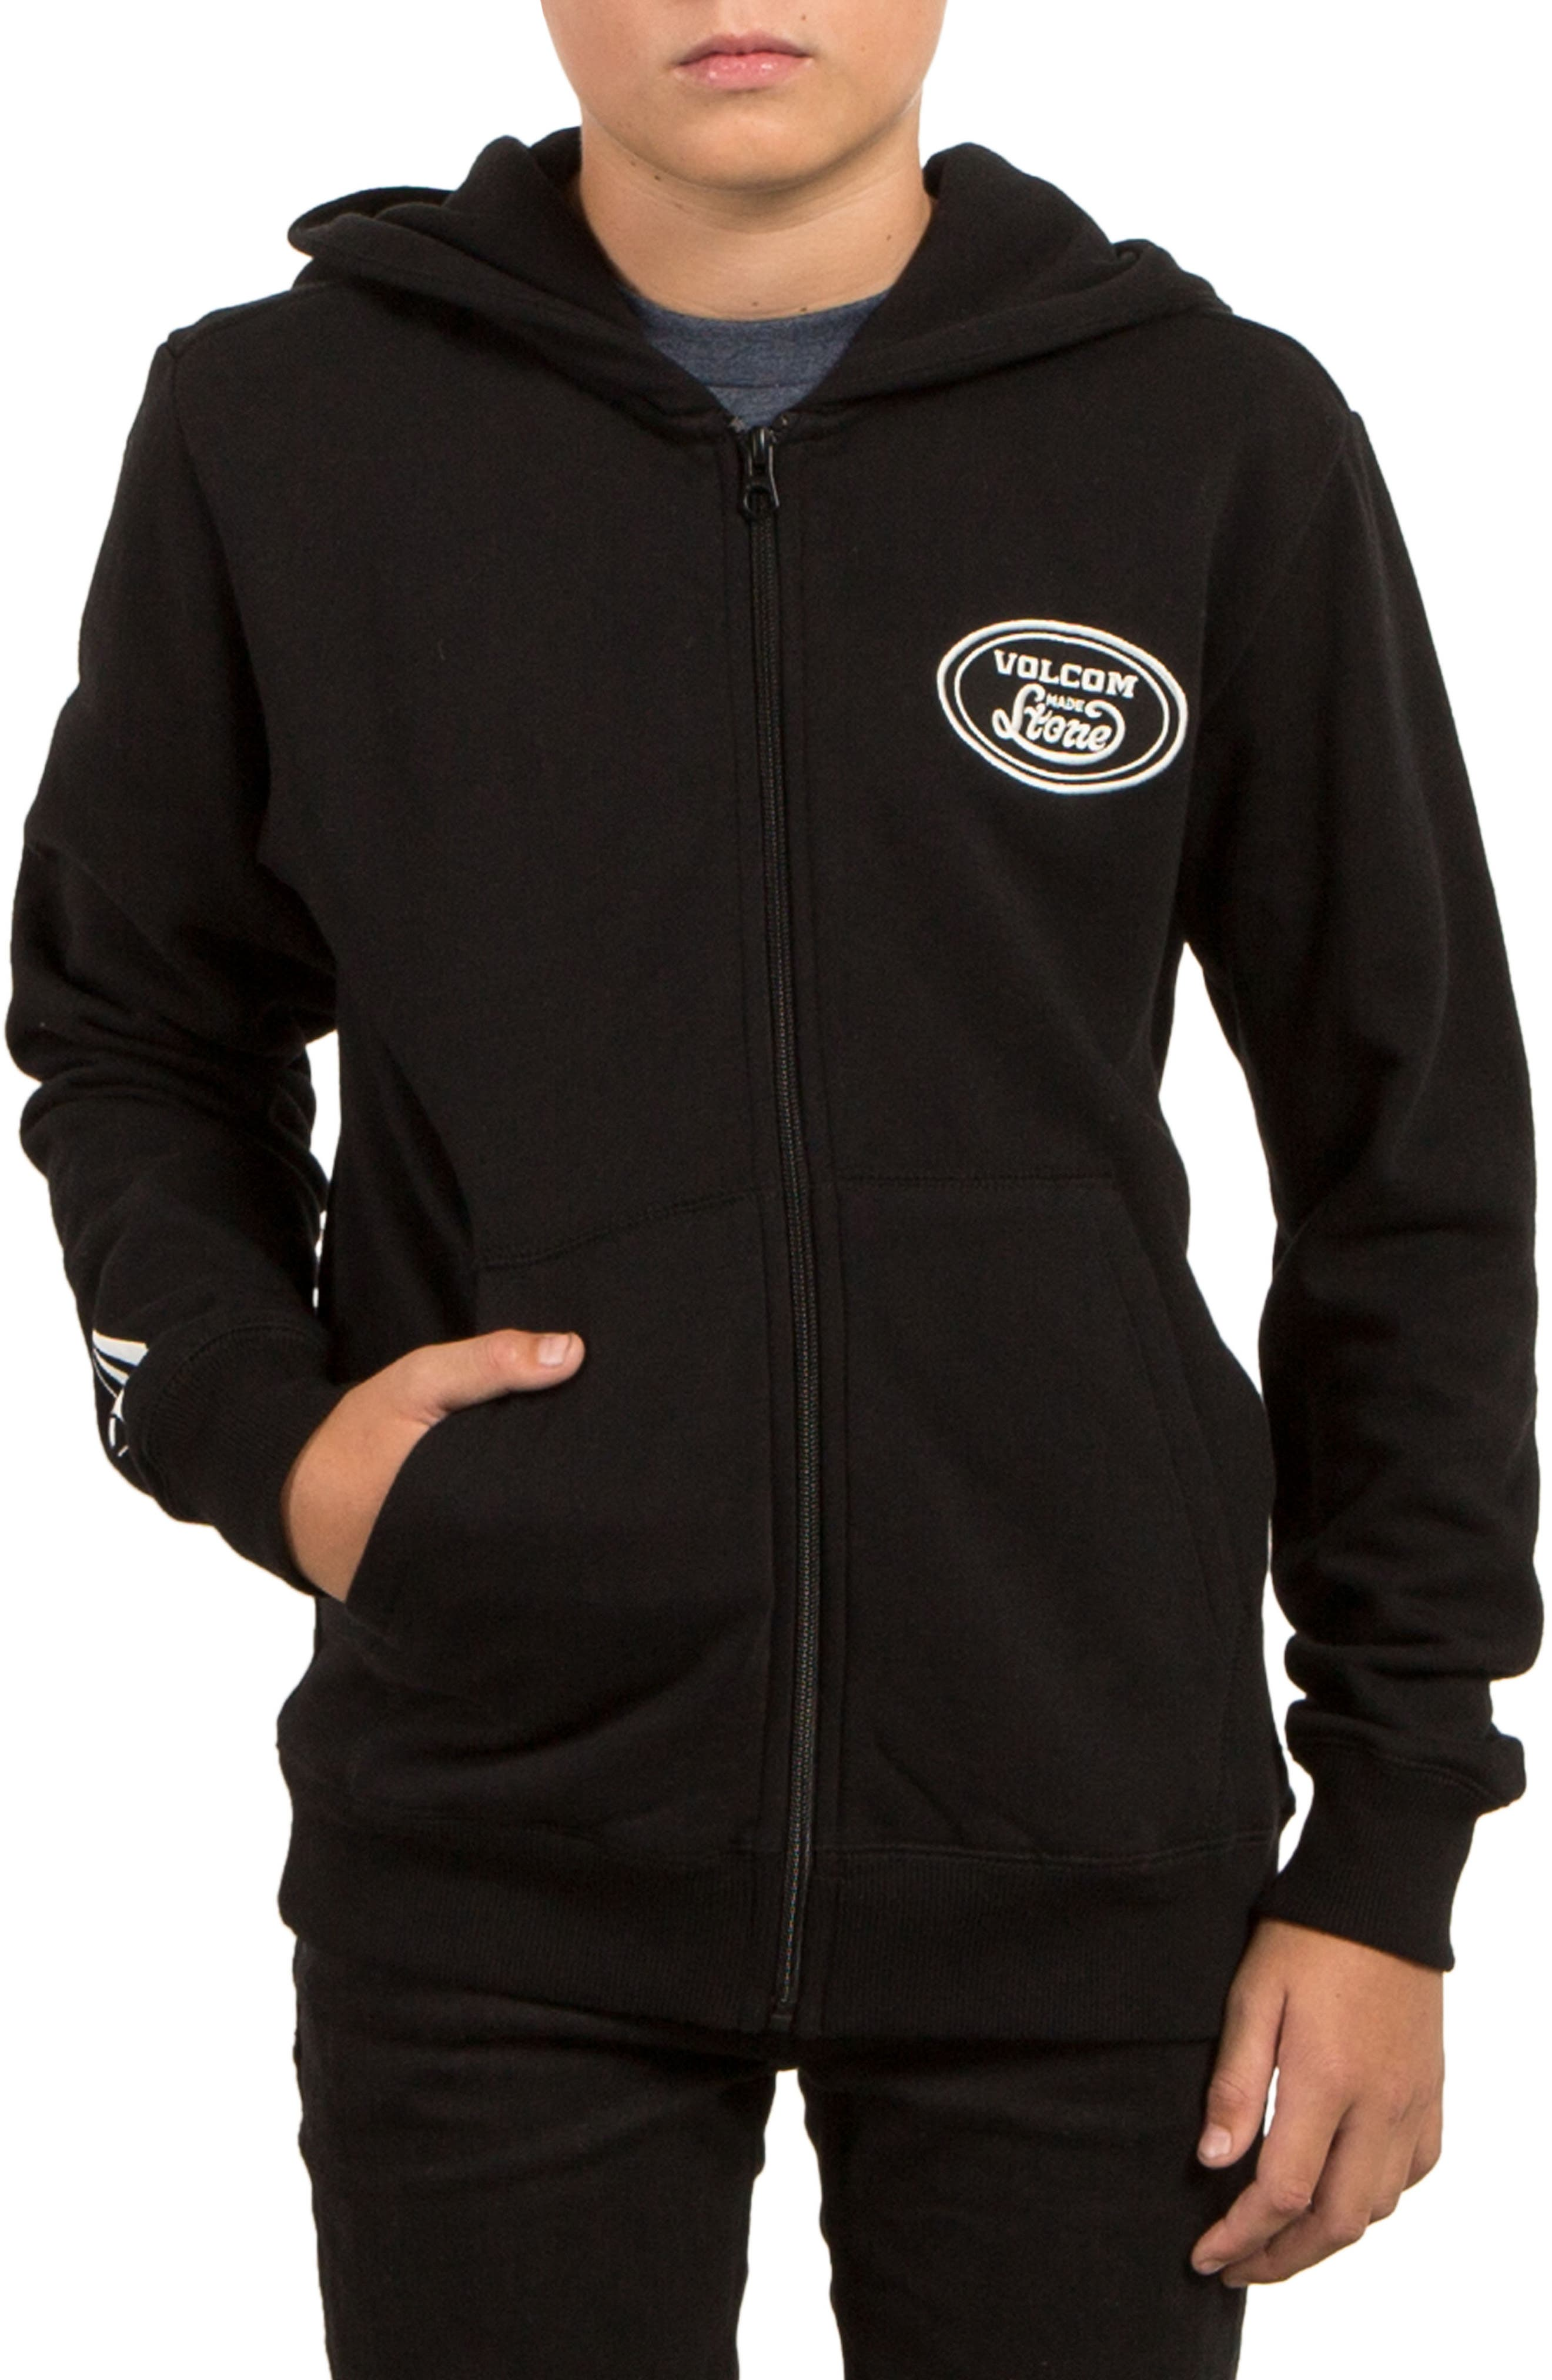 Alternate Image 1 Selected - Volcom Supply Stone Zip Hoodie (Big Boys)